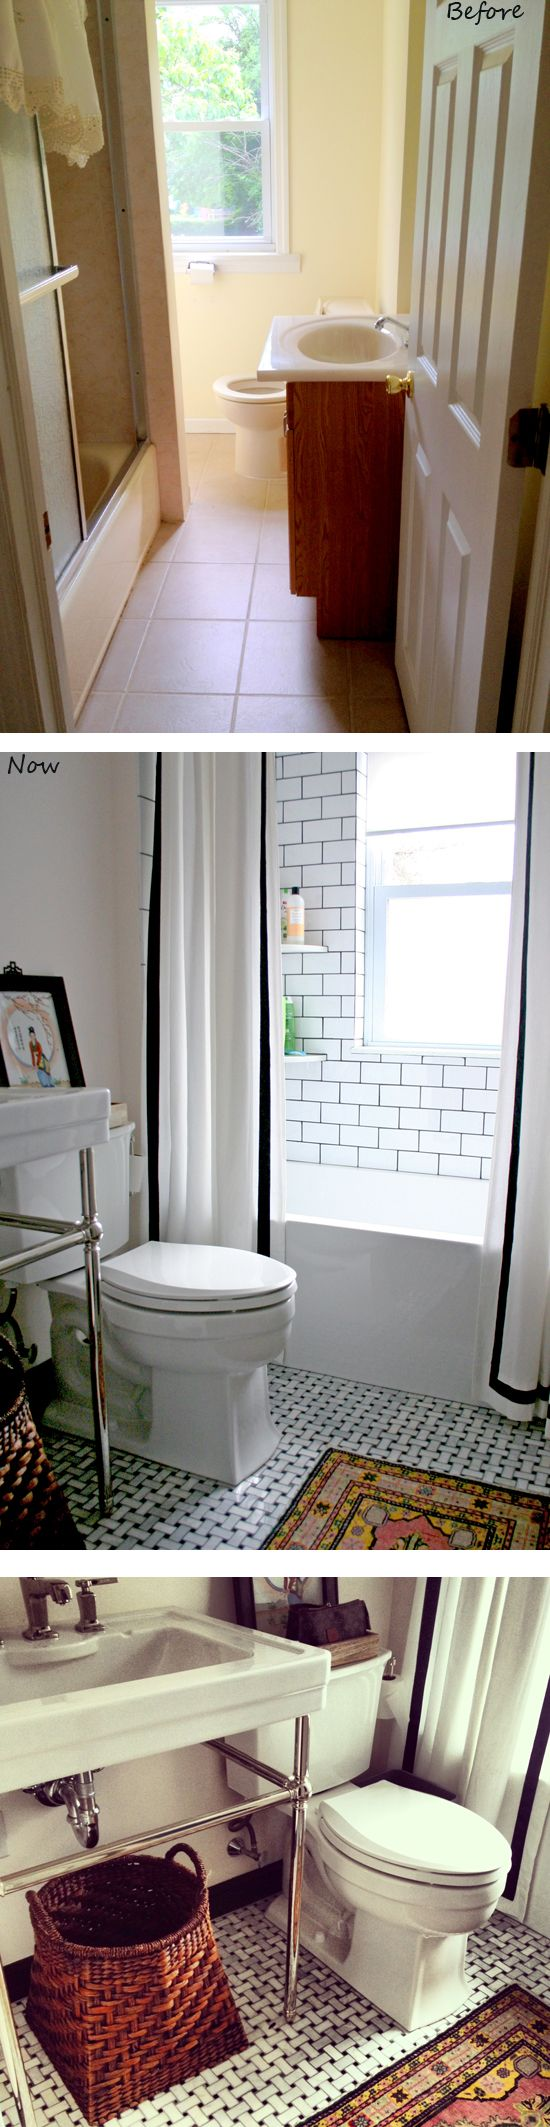 Shower drain furthermore stone look wall tile additionally modern - Love The Black Grout Double Shower Curtain White With Black Tape Trim Mosaic Marble Floor Tribal Rug In Bathroom By Design Manifest